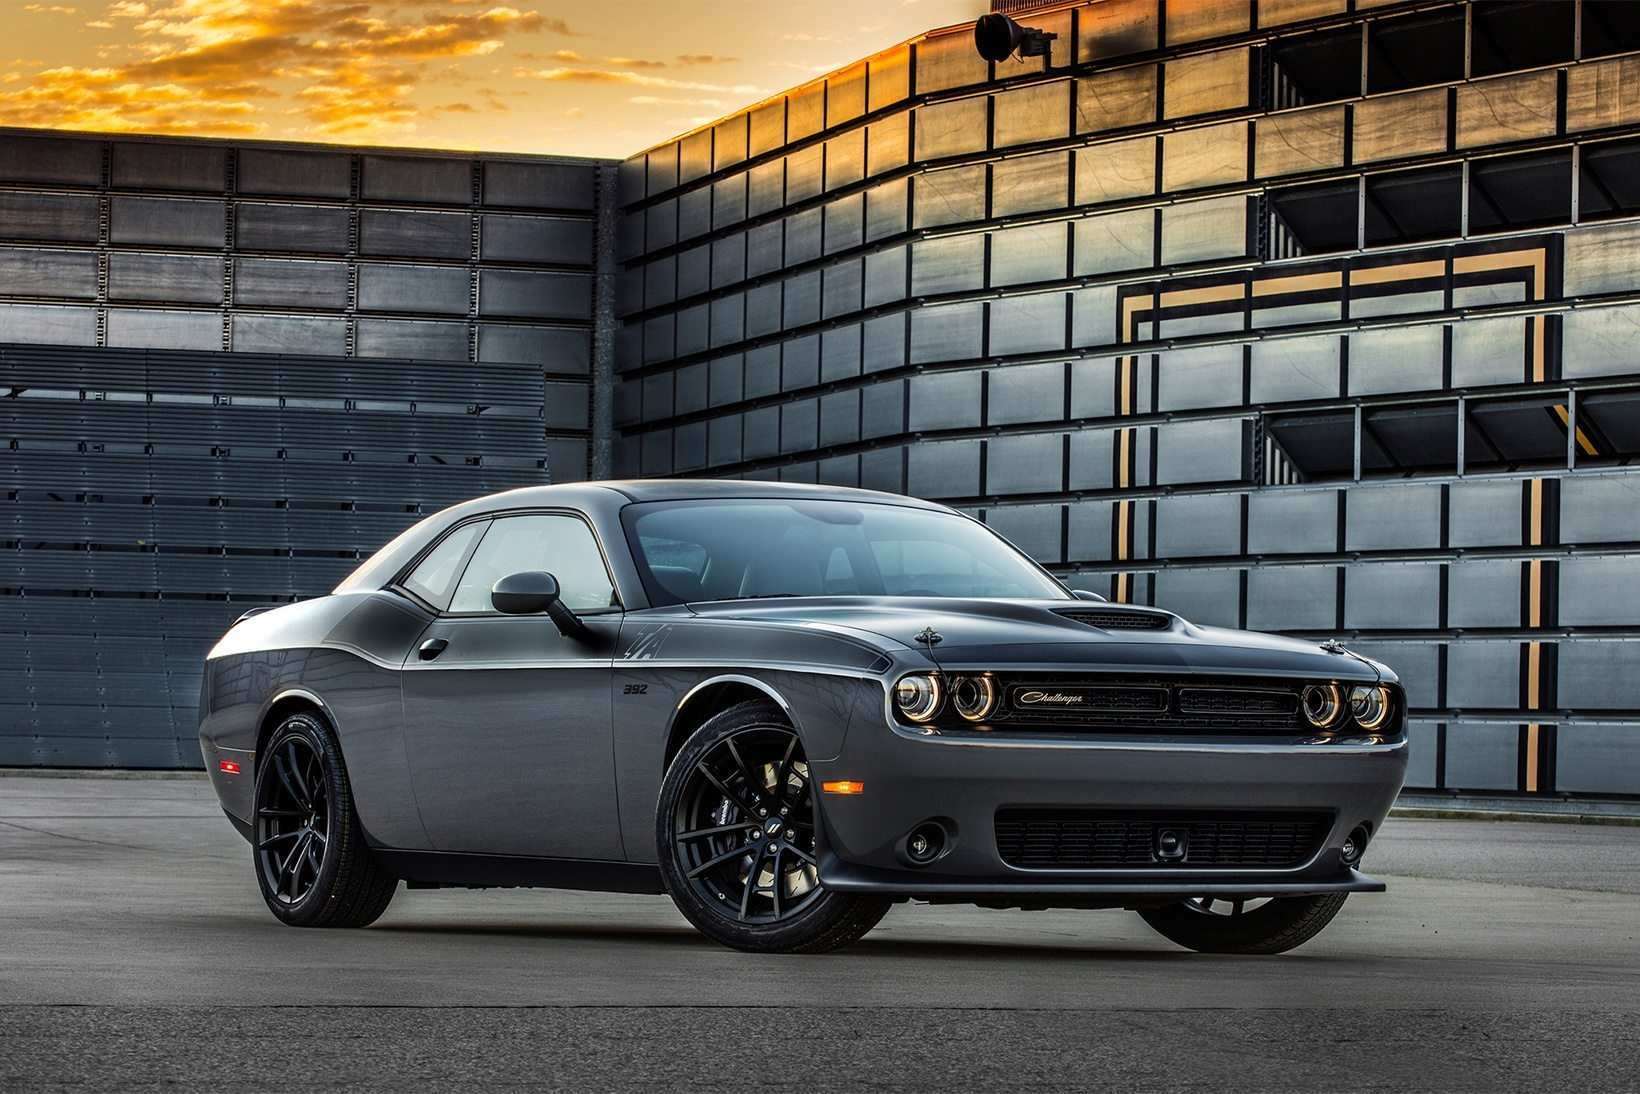 19 Concept of 2020 Dodge Challenger Awd Ratings by 2020 Dodge Challenger Awd